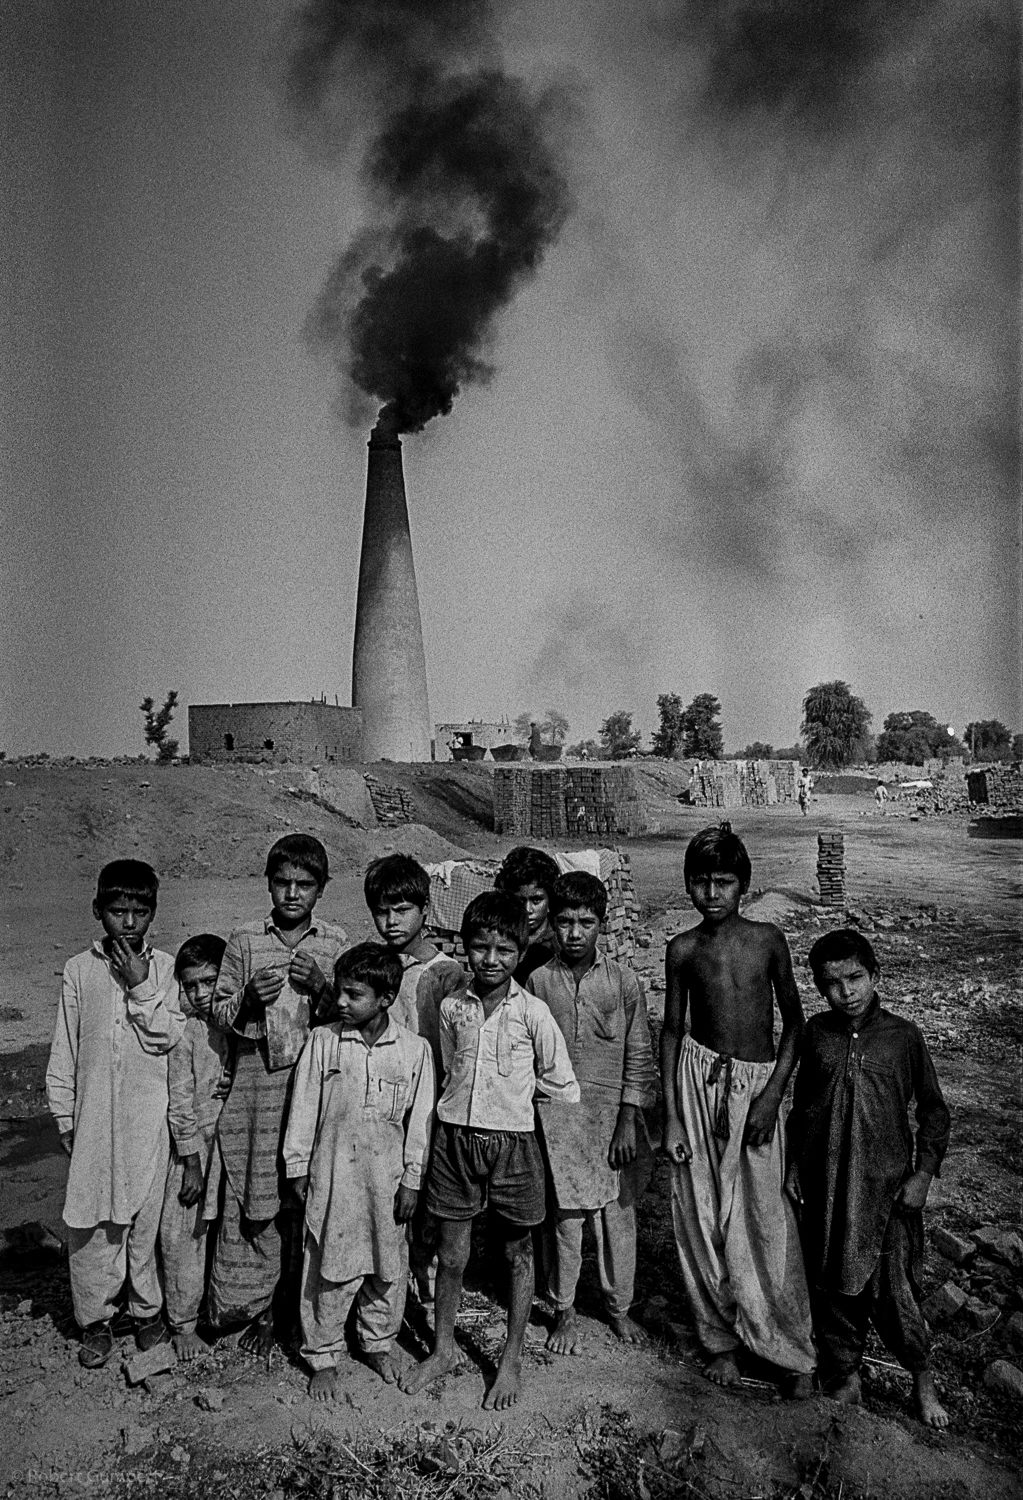 1990: Central Pakistan. Child brick makers.